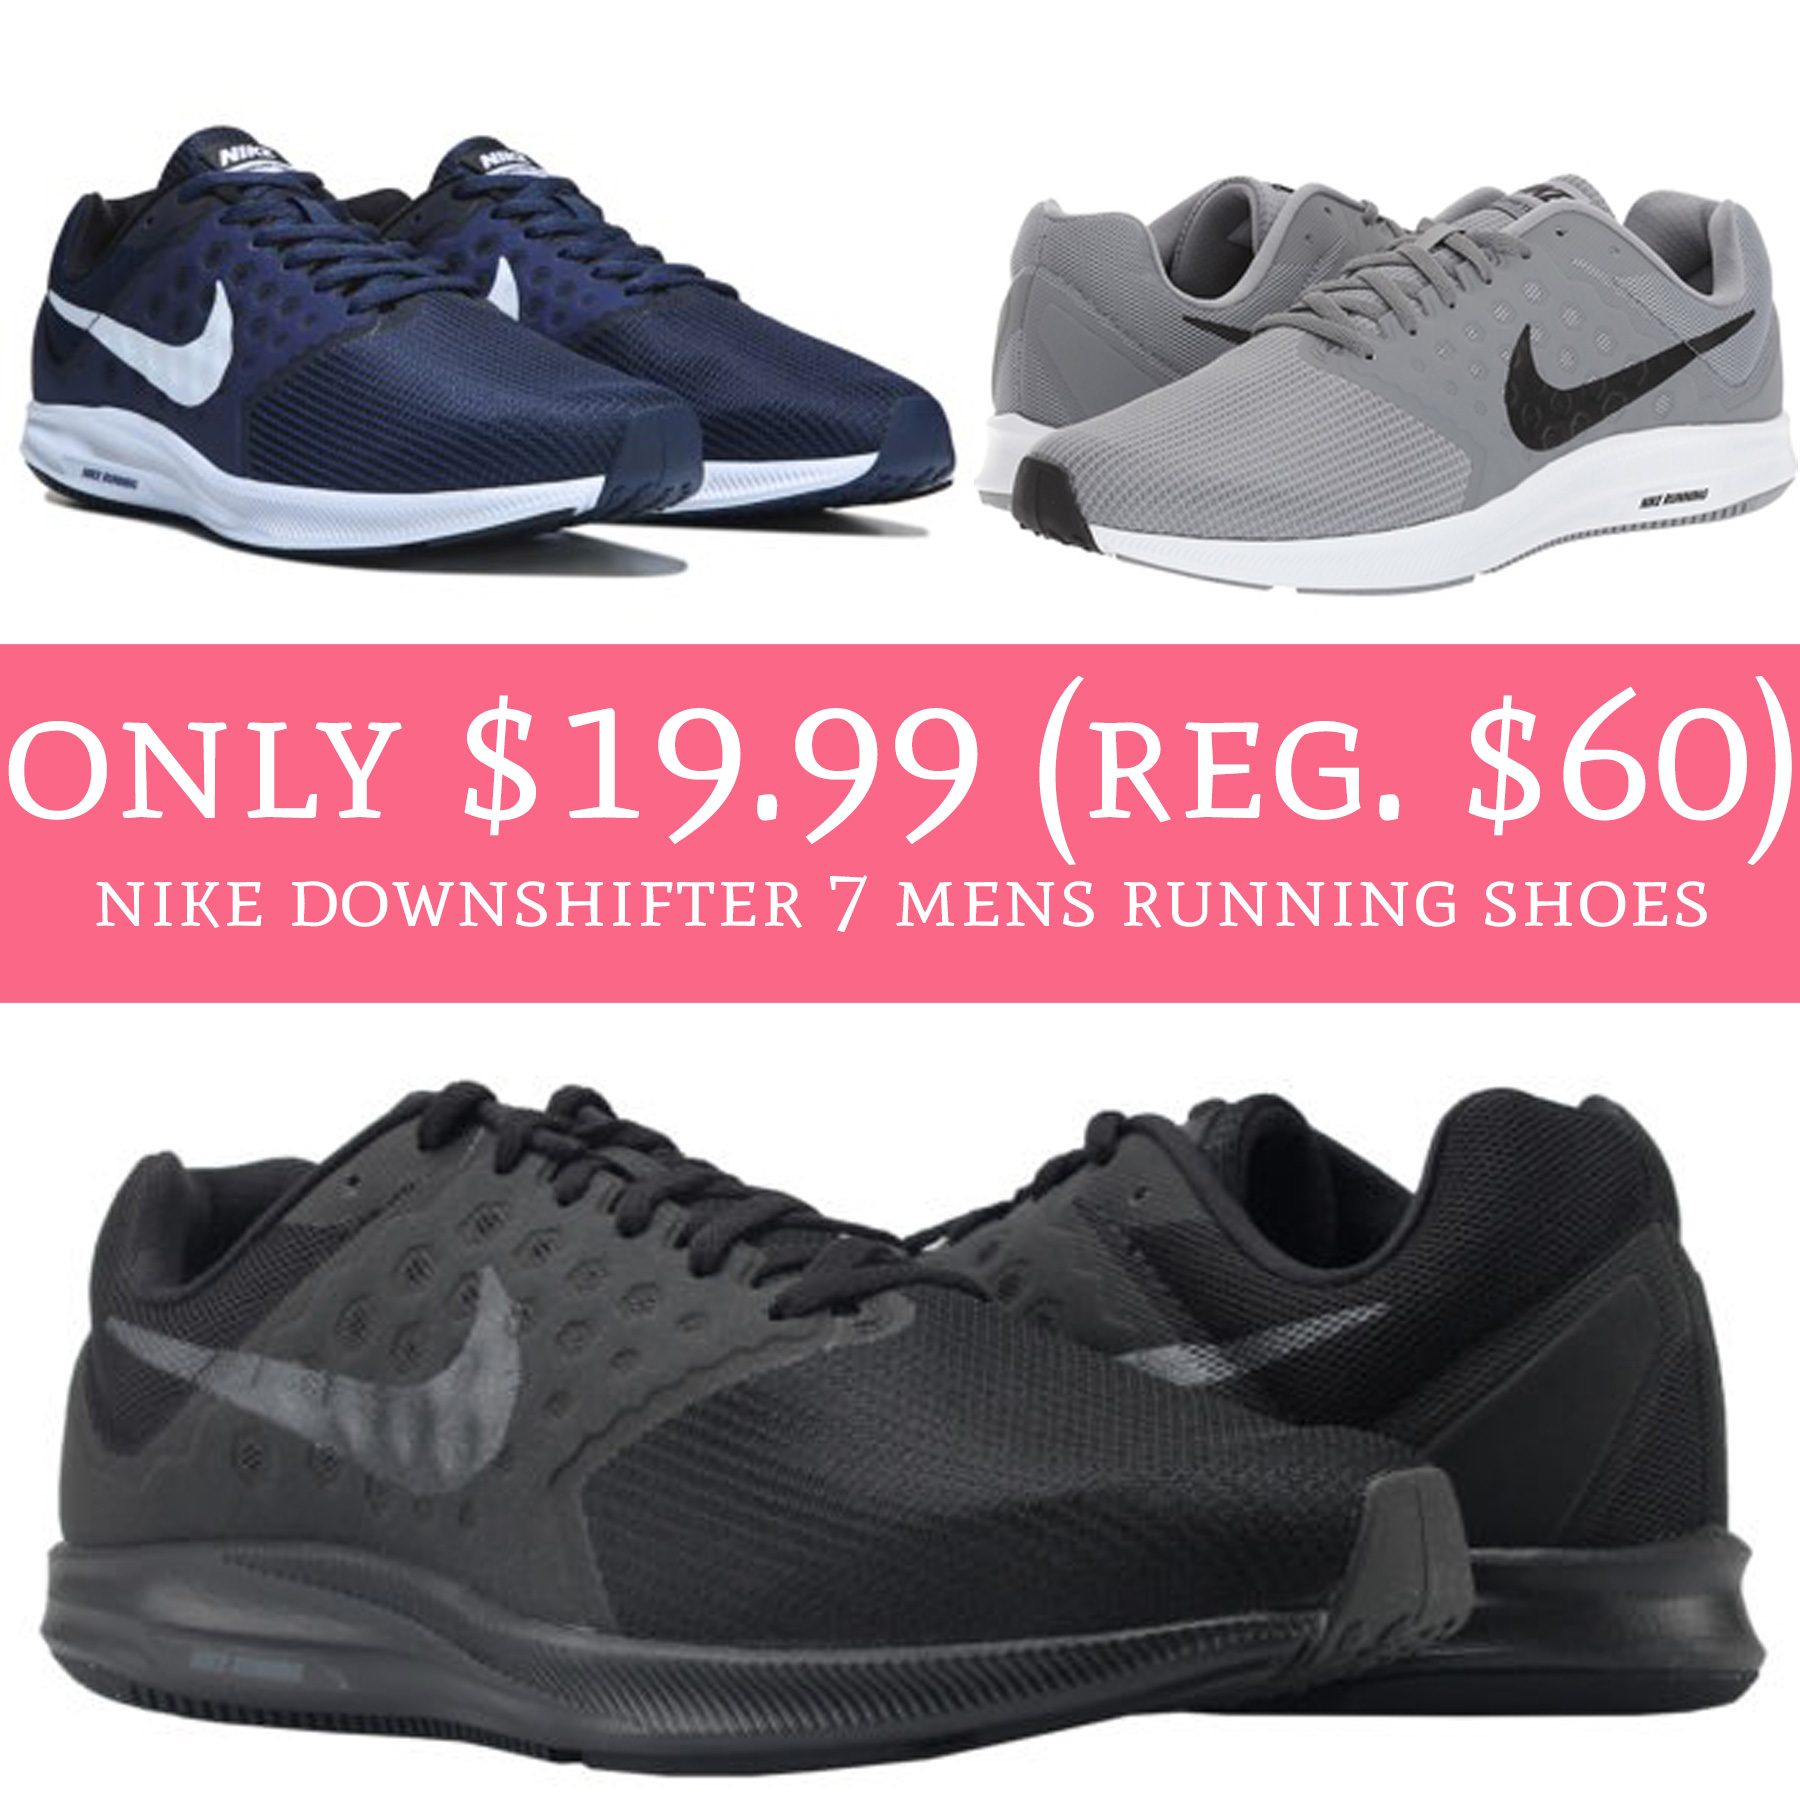 043e3a5acdf73 Only  19.99 (Reg.  60) Nike Downshifter 7 Men s Running Shoes - Deal ...